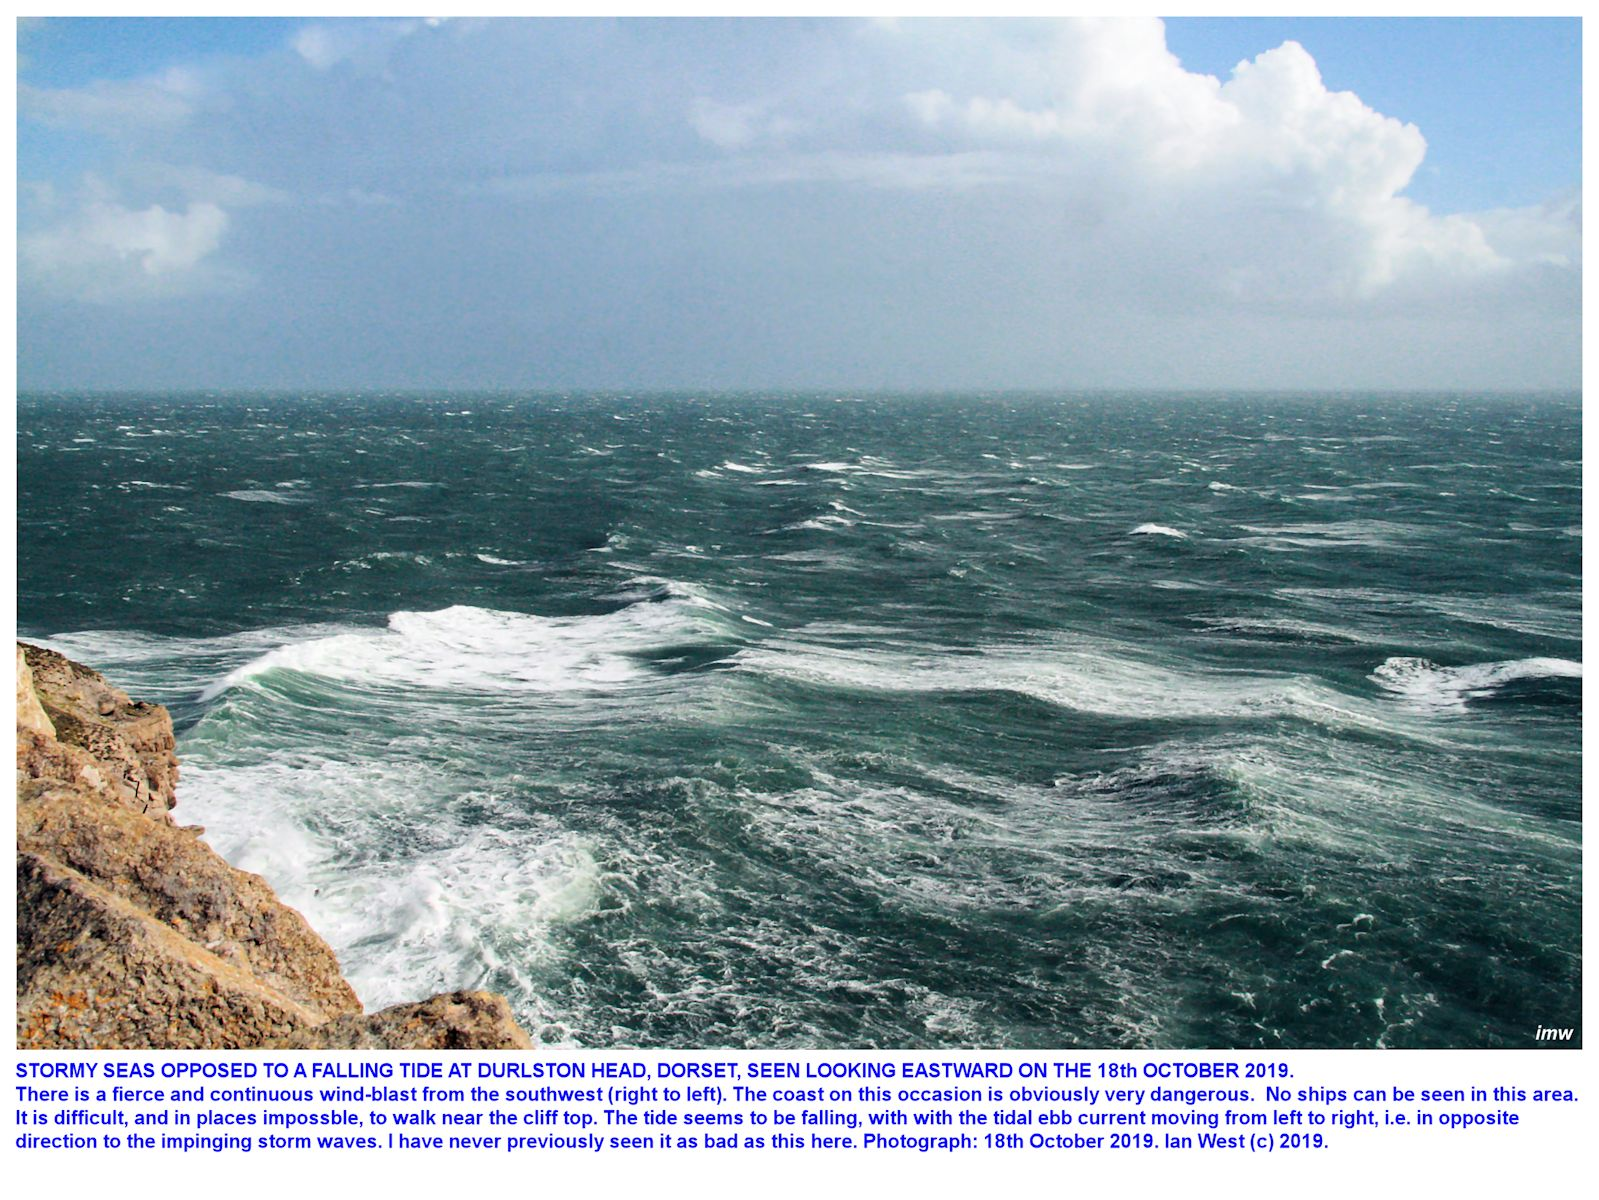 Very large waves, of long wave-length, moving northeastward and in the opposite direction to the outflow current of a falling tide, in severe storm conditions at Durlston Head, Dorset, 18th October 2019, Ian West